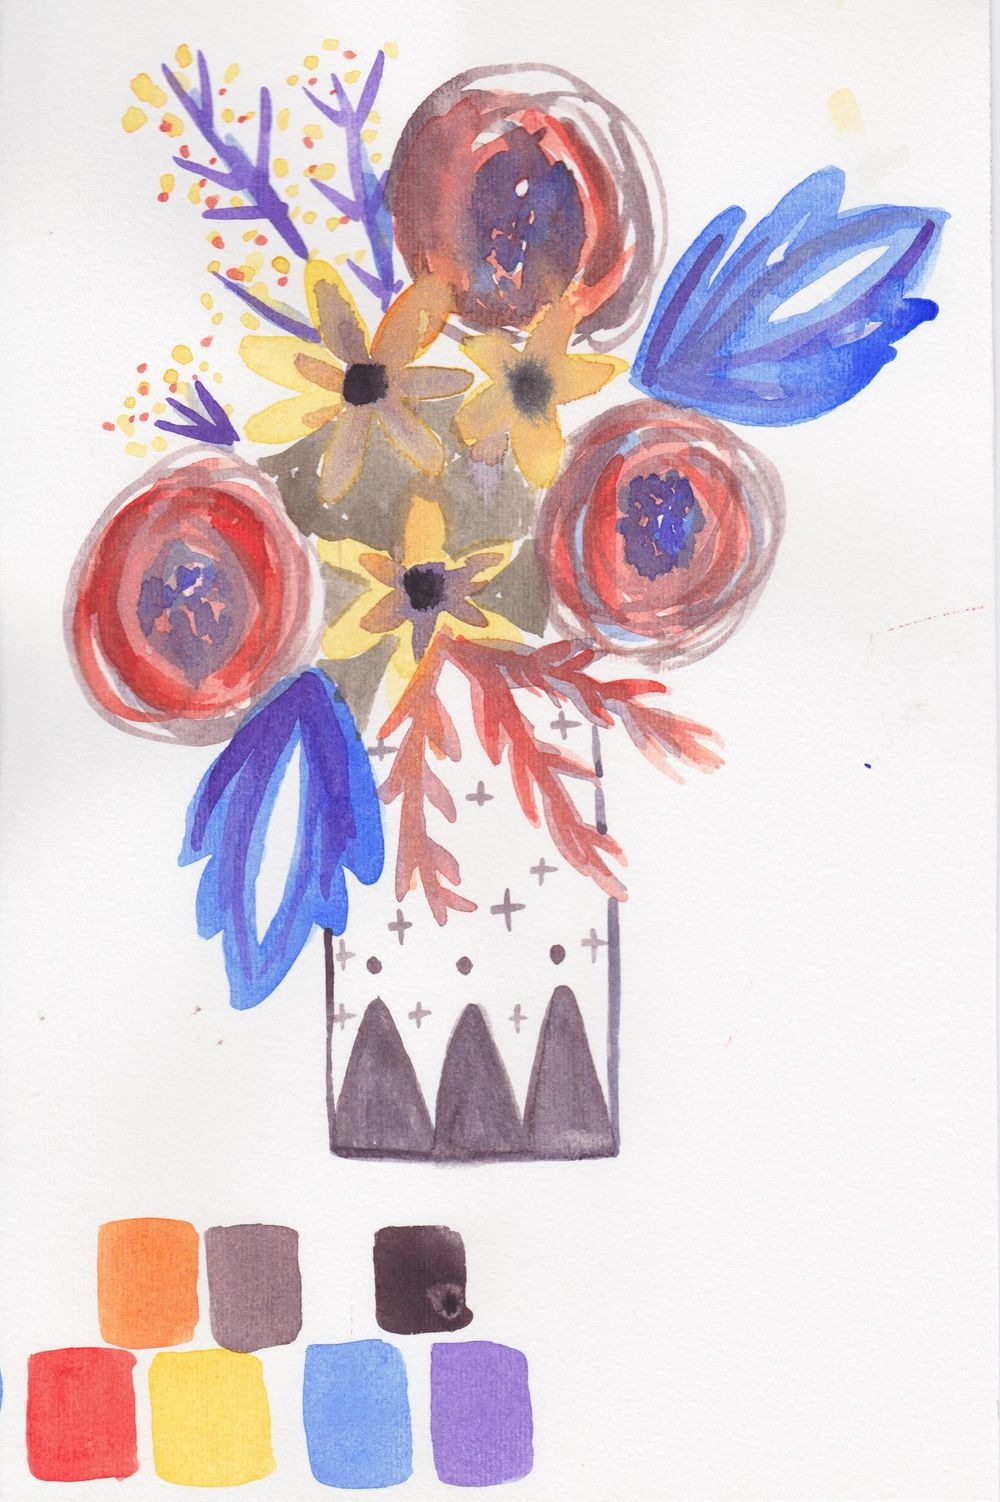 Experimenting with water color!! - image 2 - student project